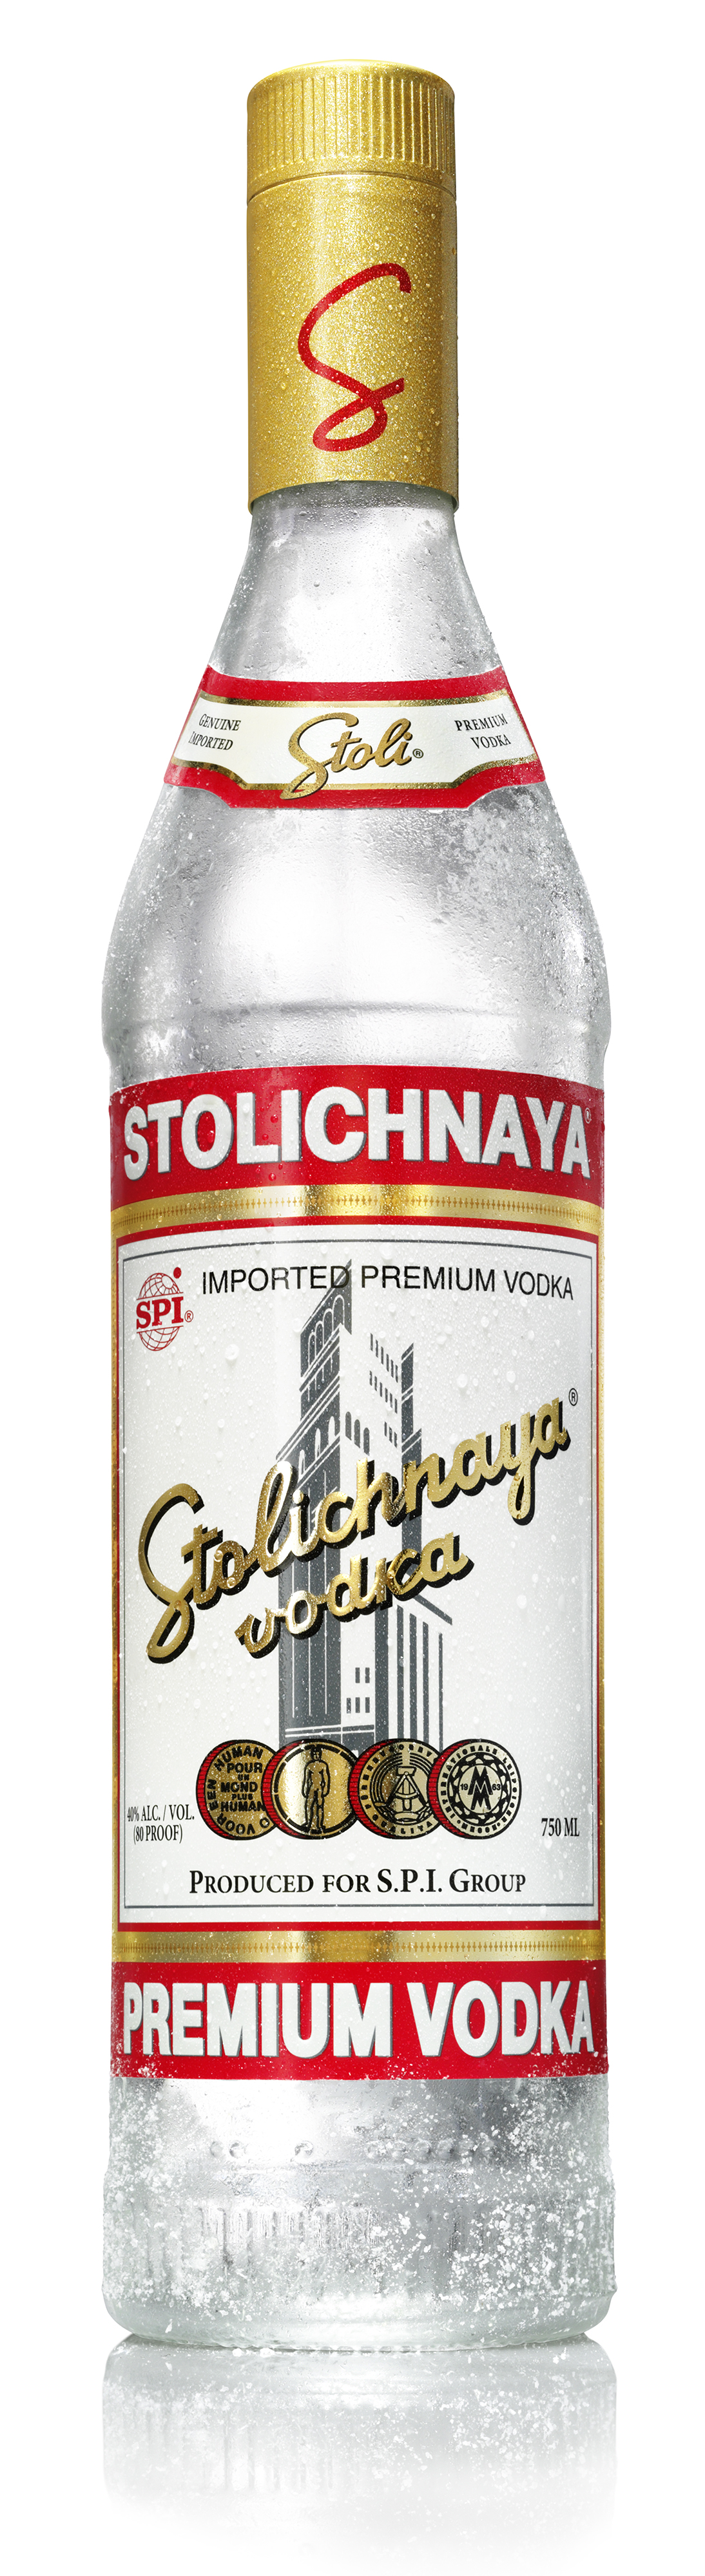 KWV Takes on SA Premium White Spirits Market with Exclusive Distribution of Stolichnaya Premium Vodka photo